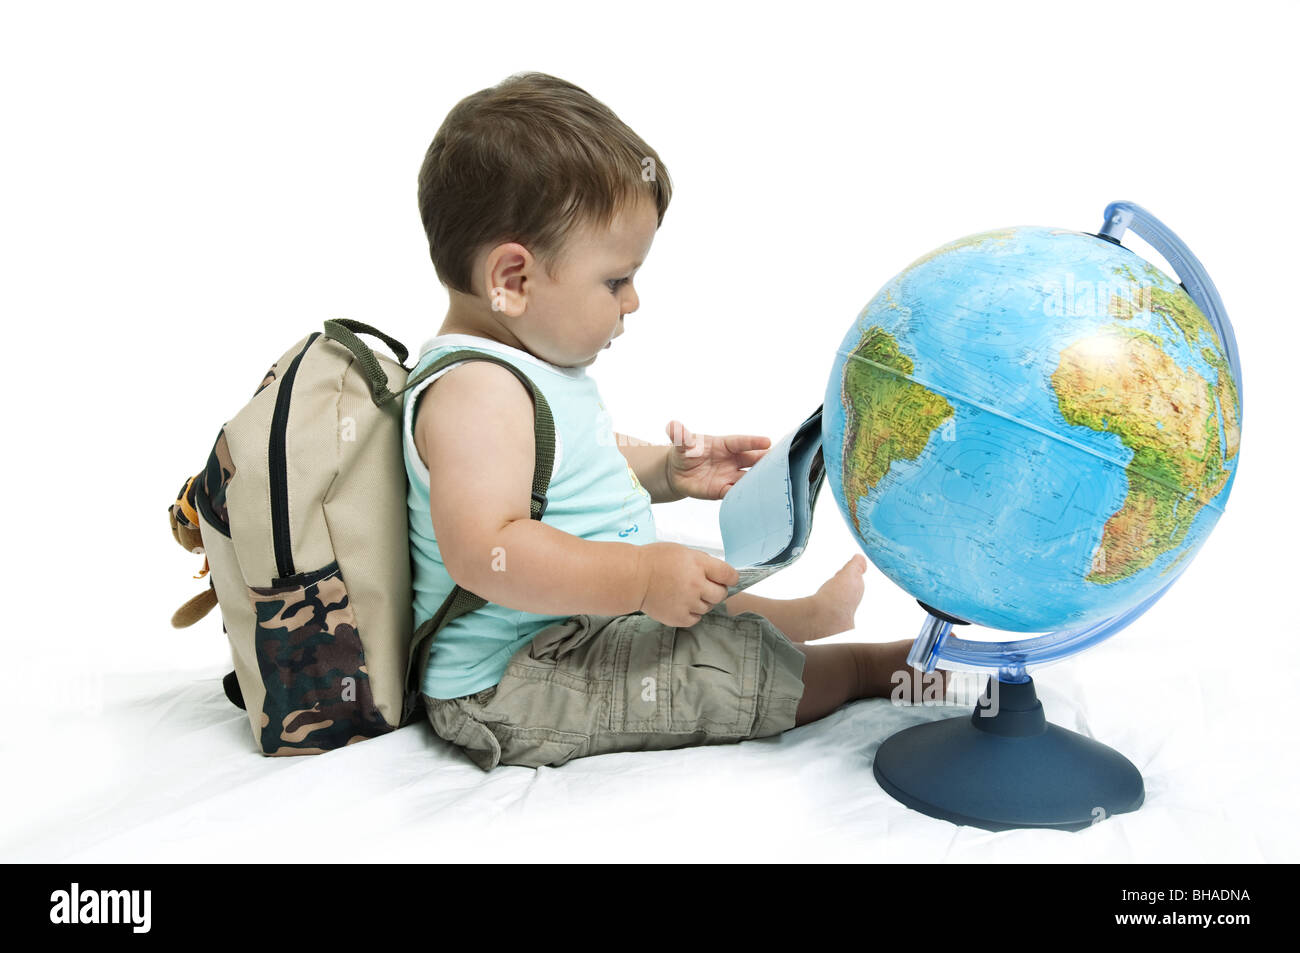 Baby boy with backpack and globe - Stock Image